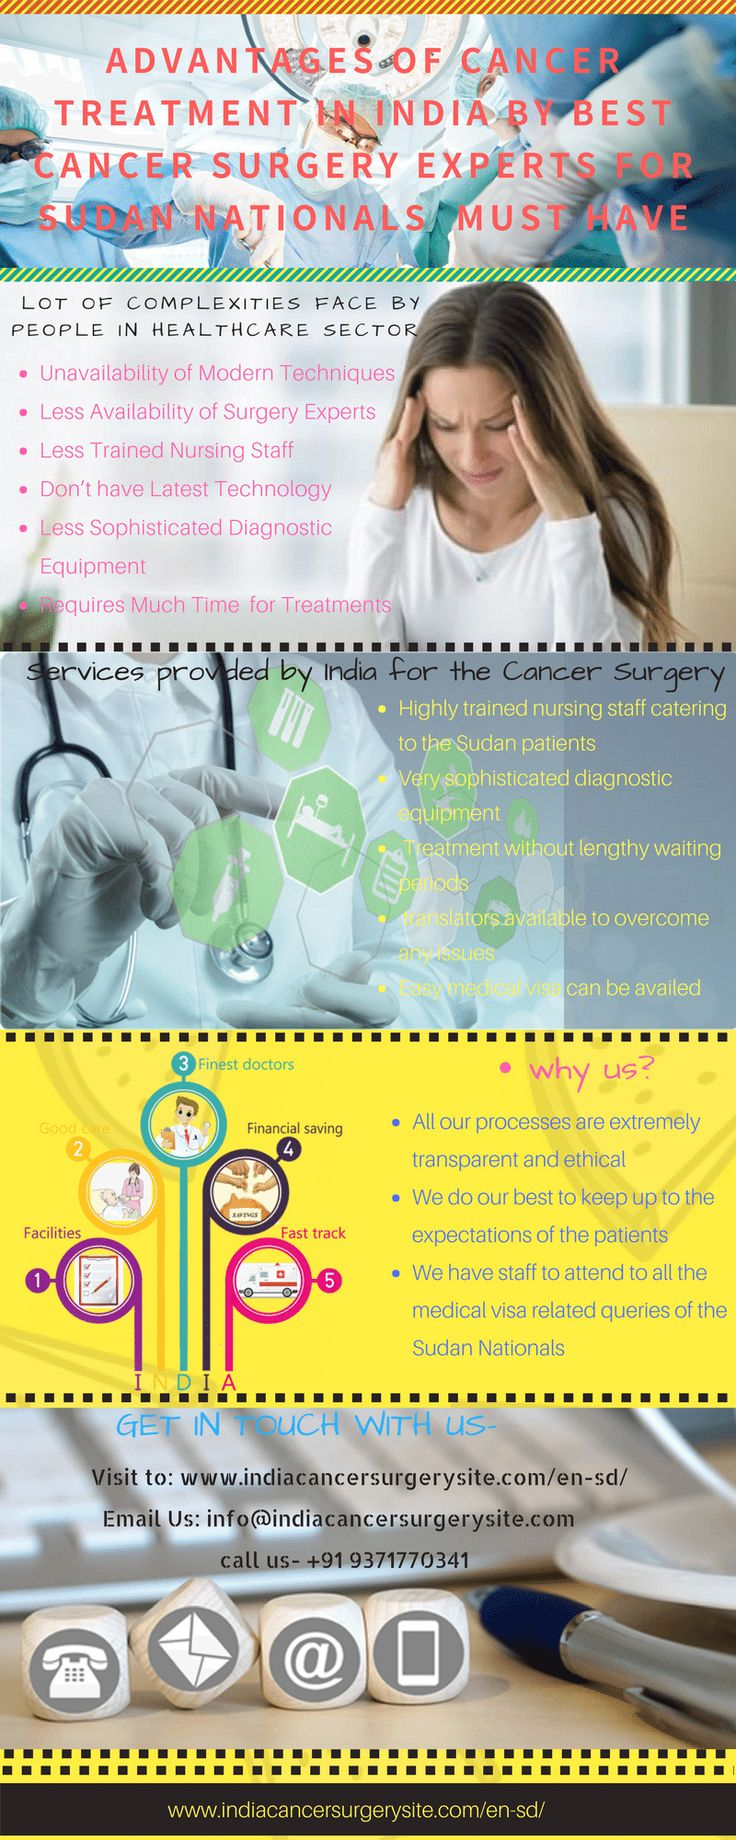 Top OncoSurgeons in Delhi, Top Hospital for Cancer Treatment in India , Minimum Cost Liver Cancer Treatment in India , Cost of Bone cancer Surgery in India, Best price for Mouth cancer in india, Pancreatic cancer Surgery cost in india, Prostate Cancer Treament in India , list of top Oncolgy surgeons in India , Best Cancer Surgery hospital Mumbai , Top Cancer Surgeons in delhi India ,